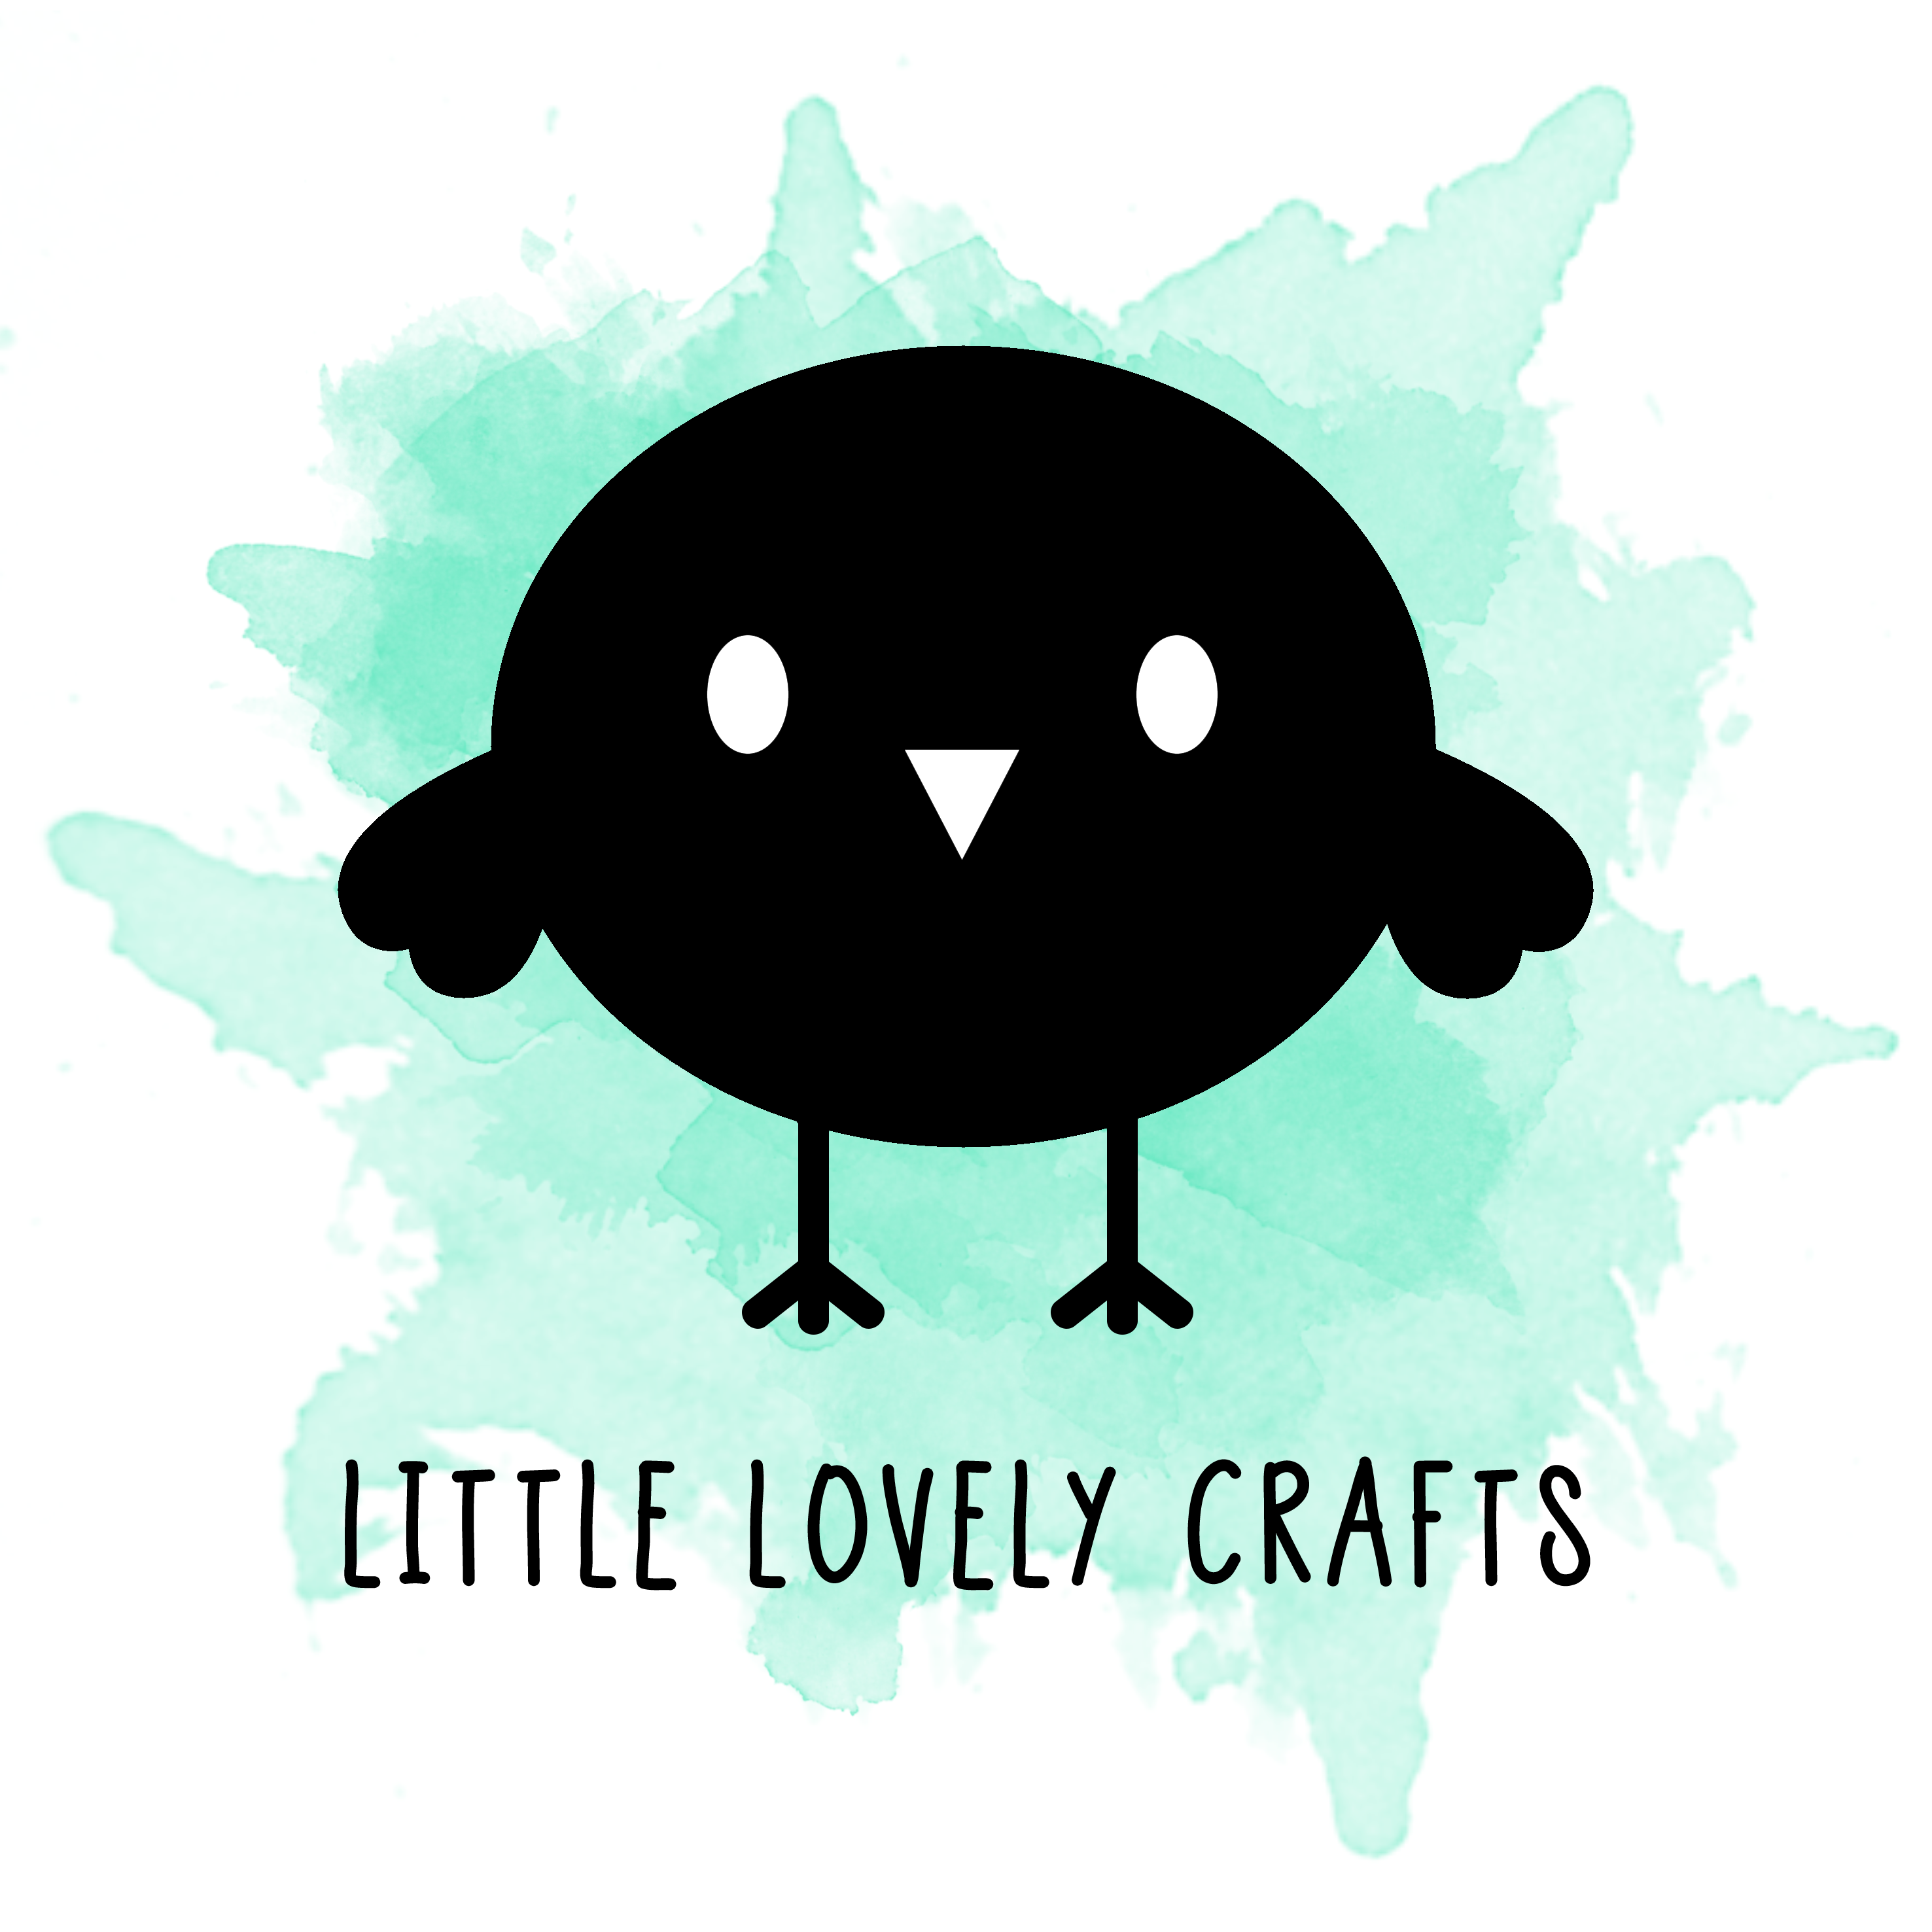 Little Lovely Crafts